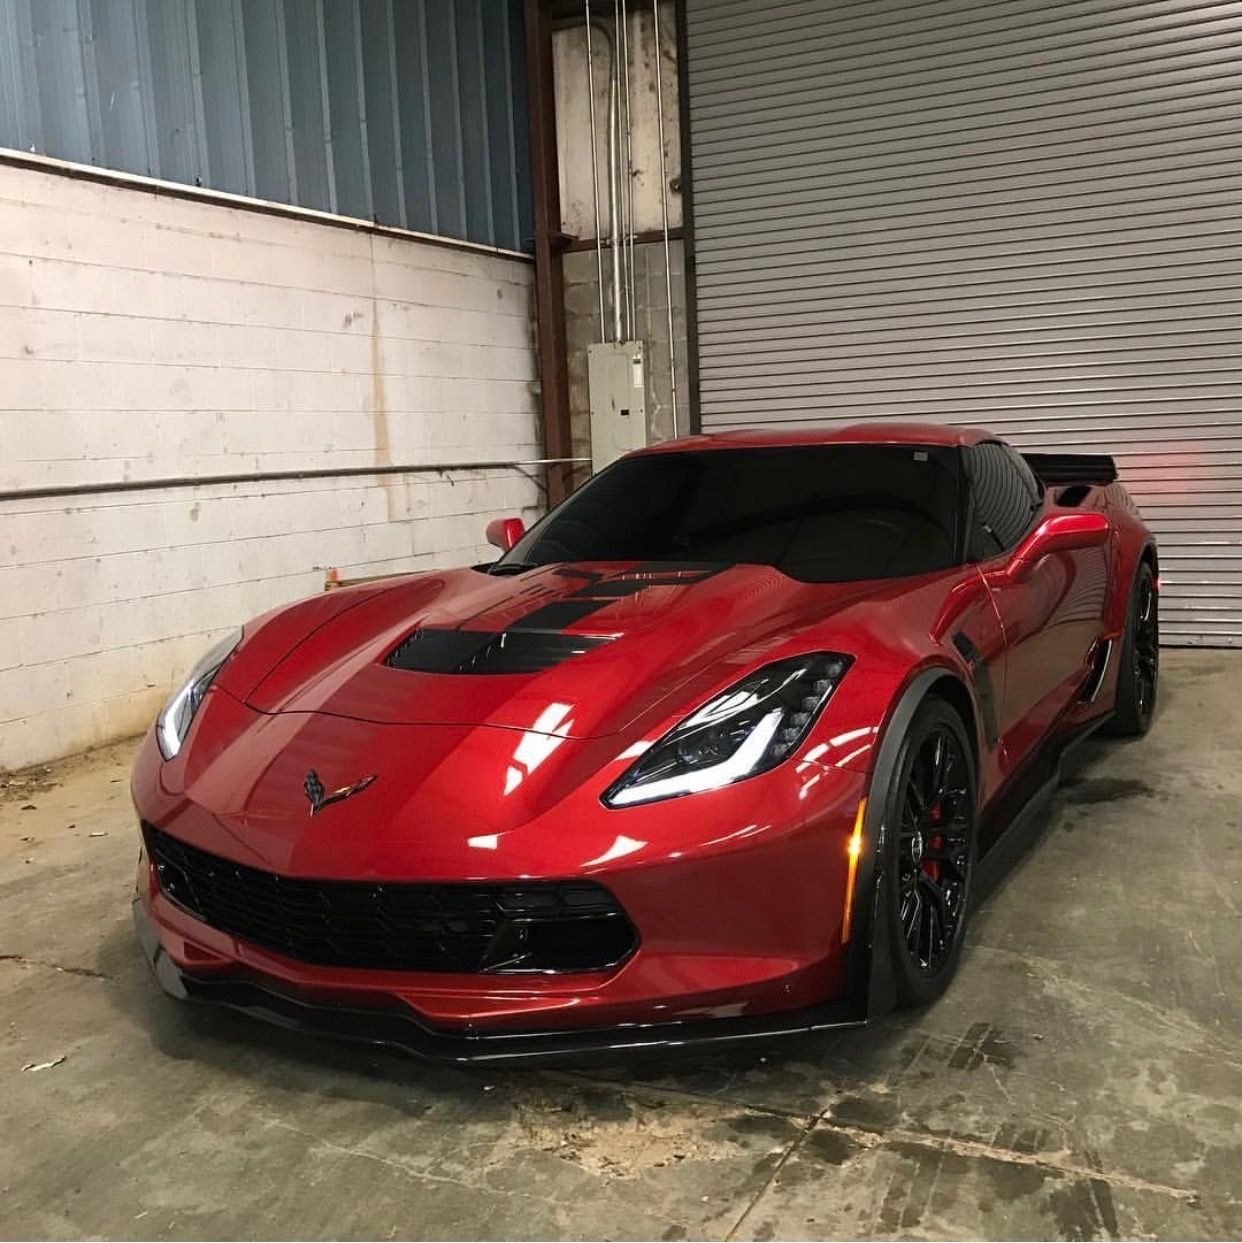 Chevrolet Corvette C7 Z06 Painted In Long Beach Red Metallic Photo